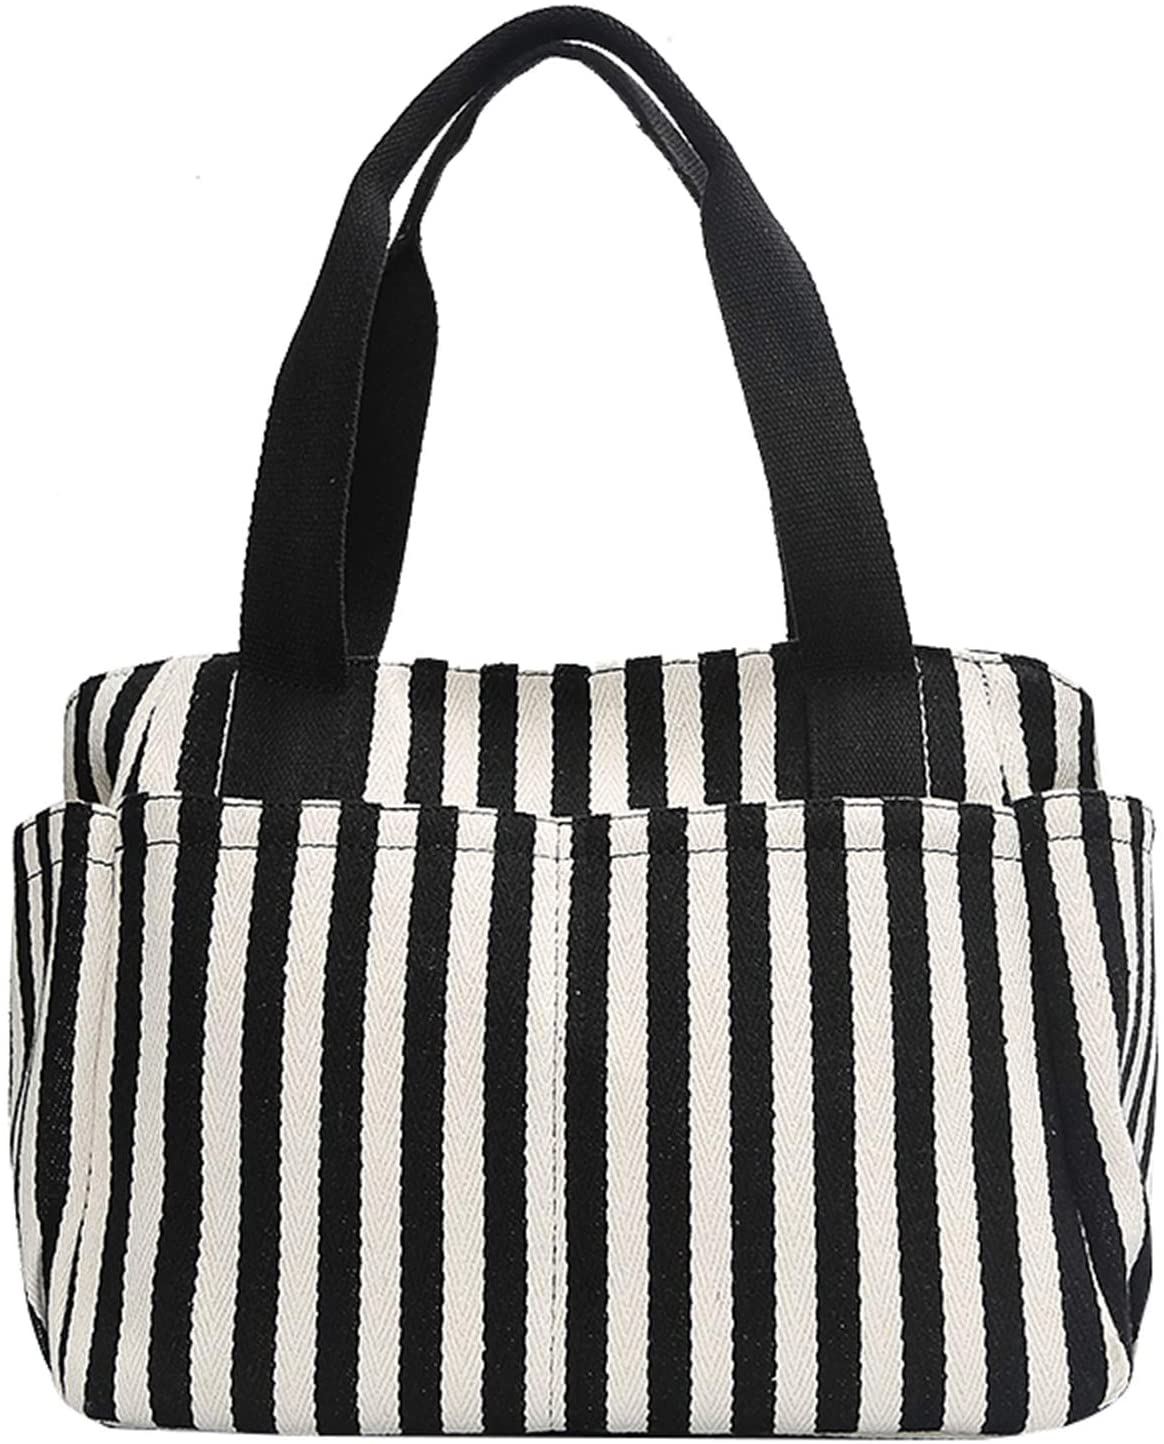 Striped Laptop Tote Handbag With 9 pockets Womens Canvas Daily Shoulder Work Bag Gifts